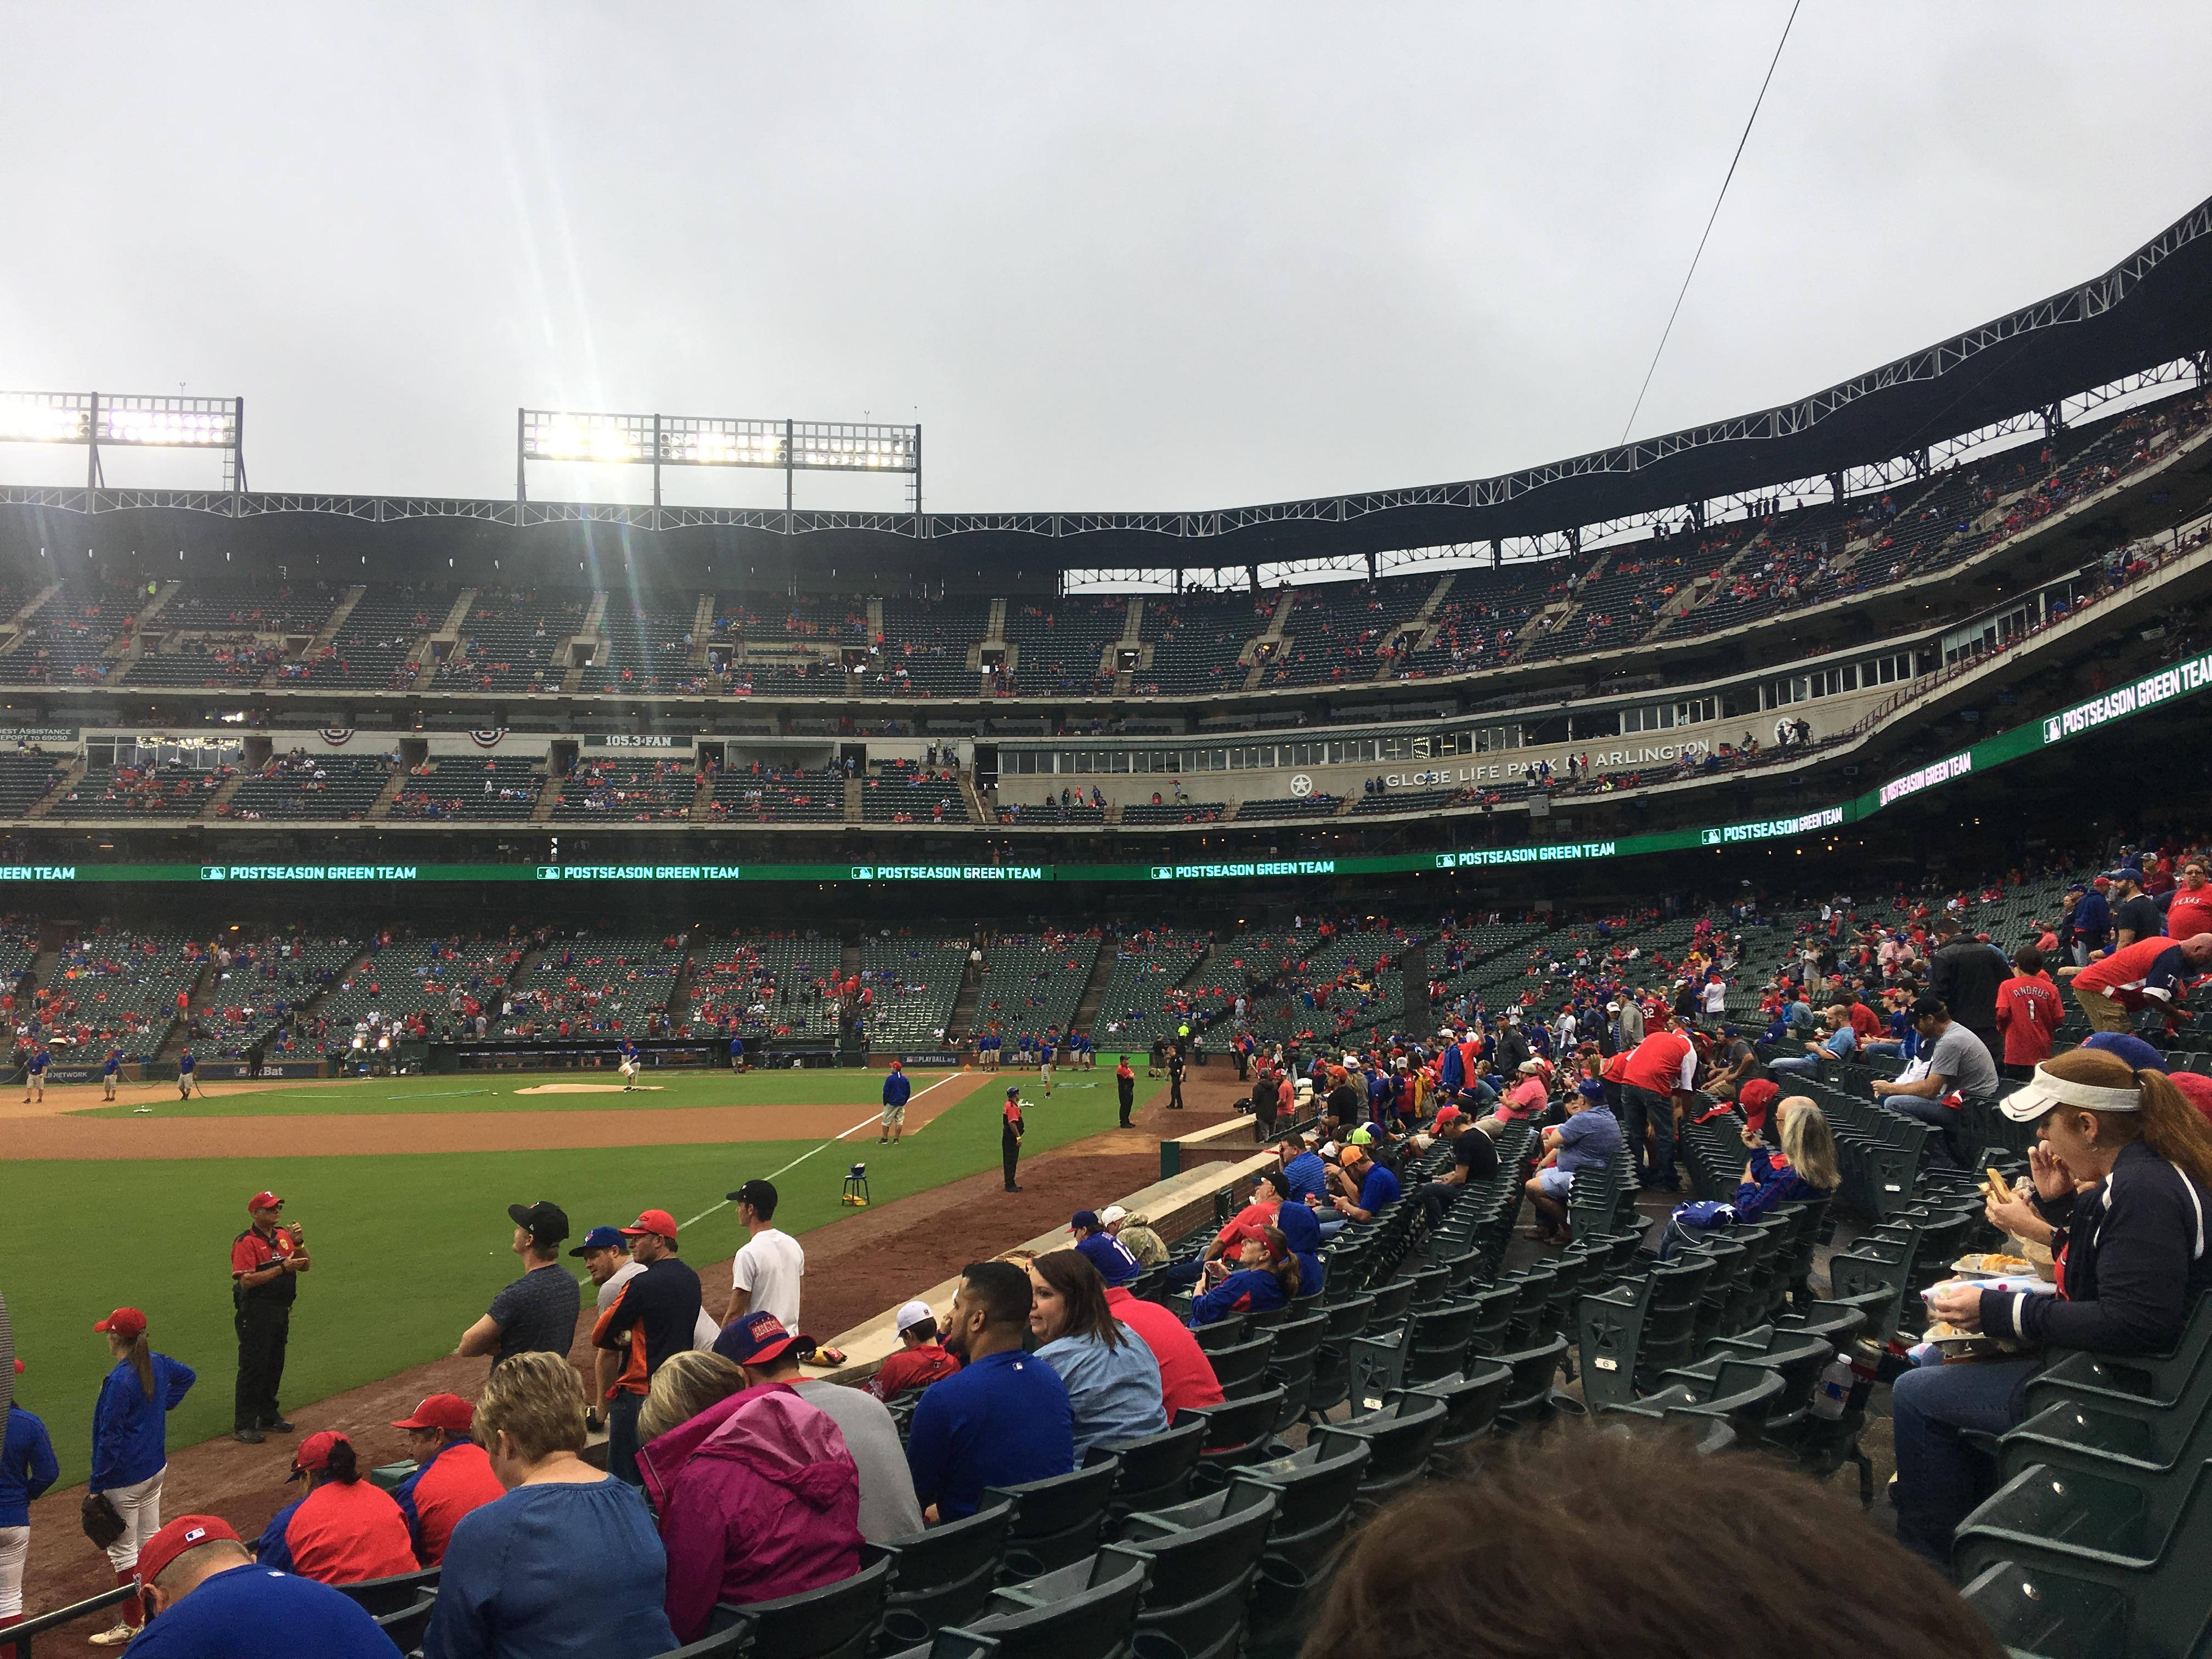 Globe Life Park in Arlington Section 12 Row 8 Seat 1